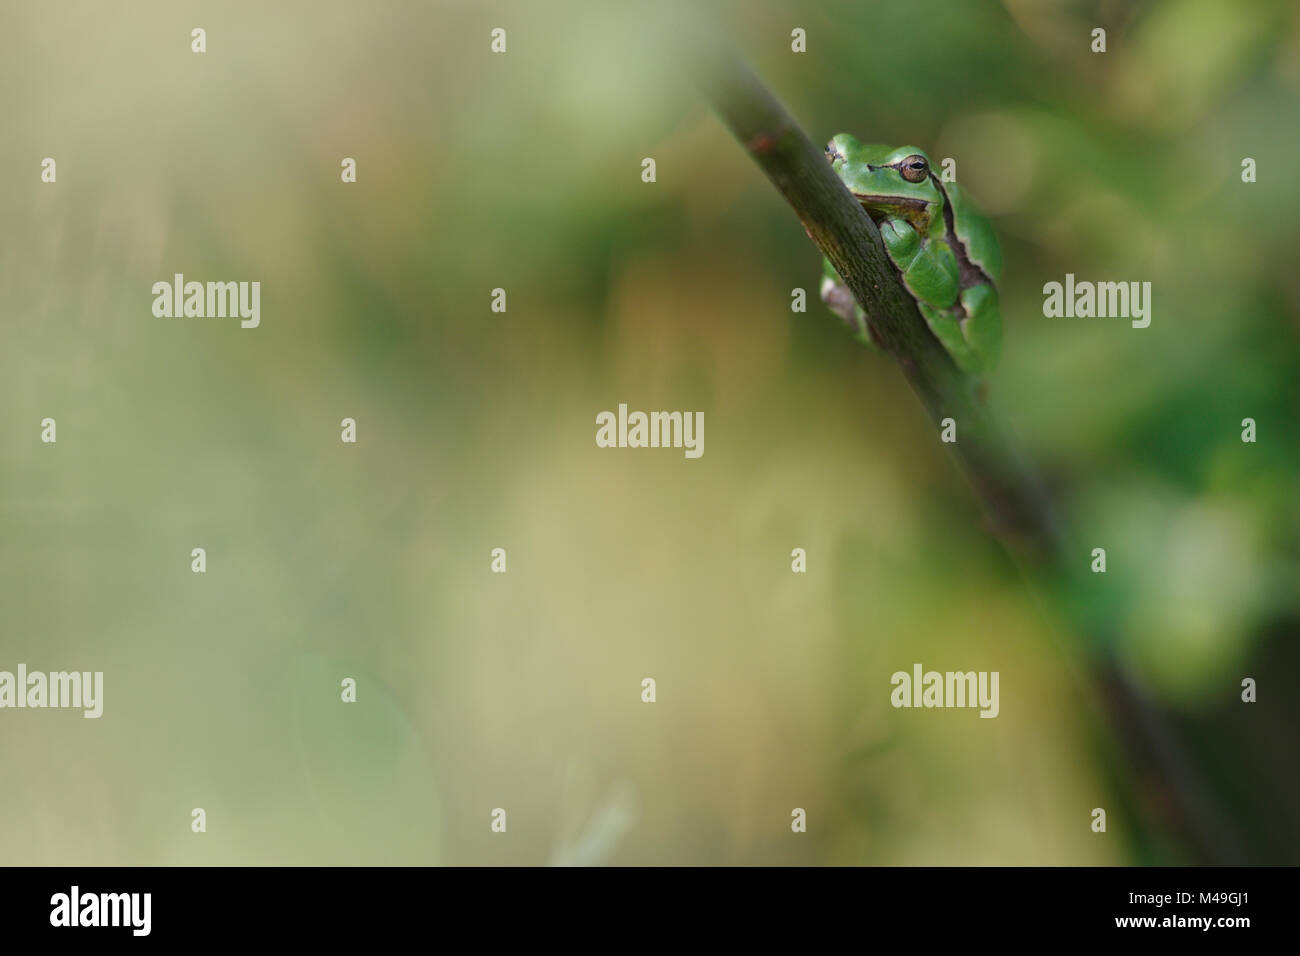 Common tree frog (Hyla arborea) resting on branch in day, Burgundy, France, April. Stock Photo